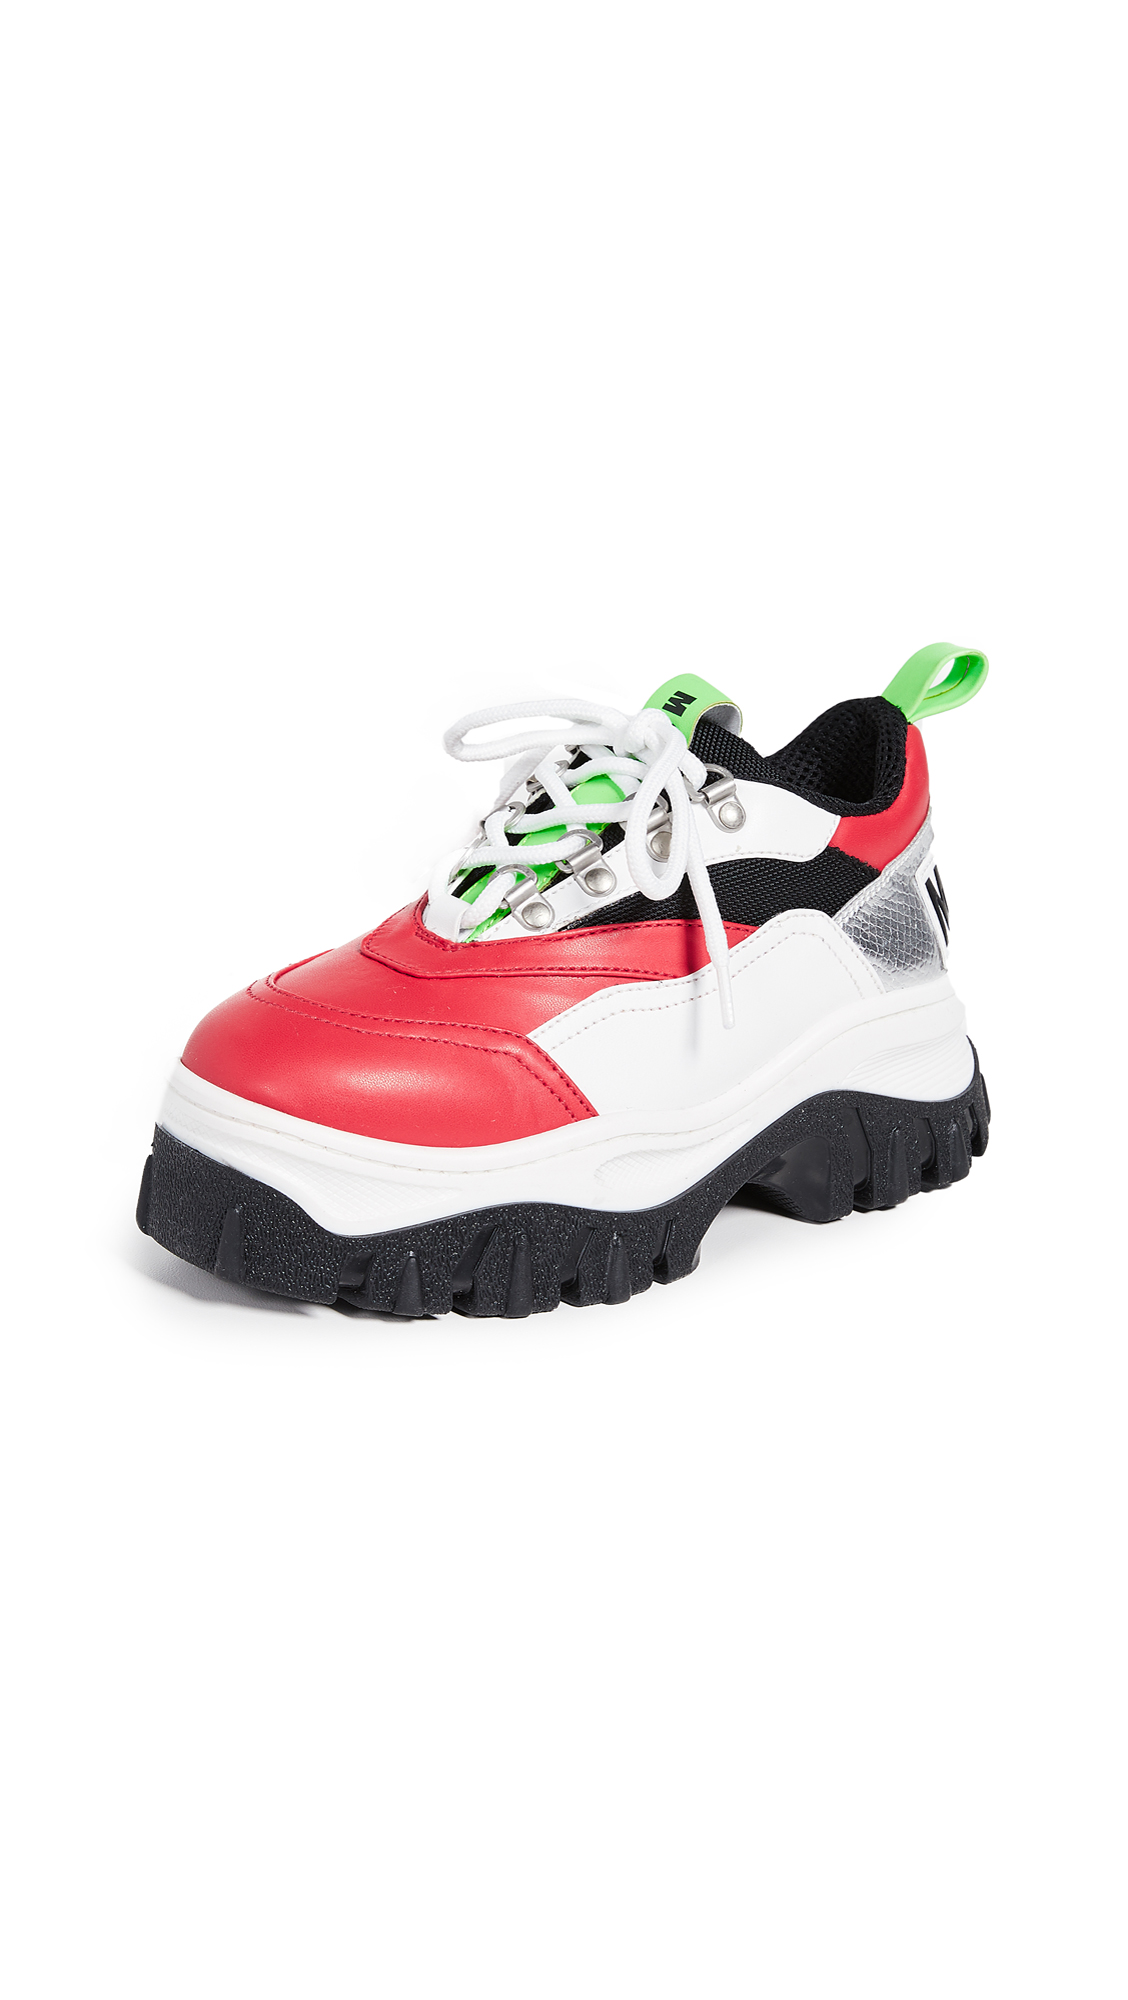 MSGM Tractor Block Lace Up Sneakers - Red/Neon Green